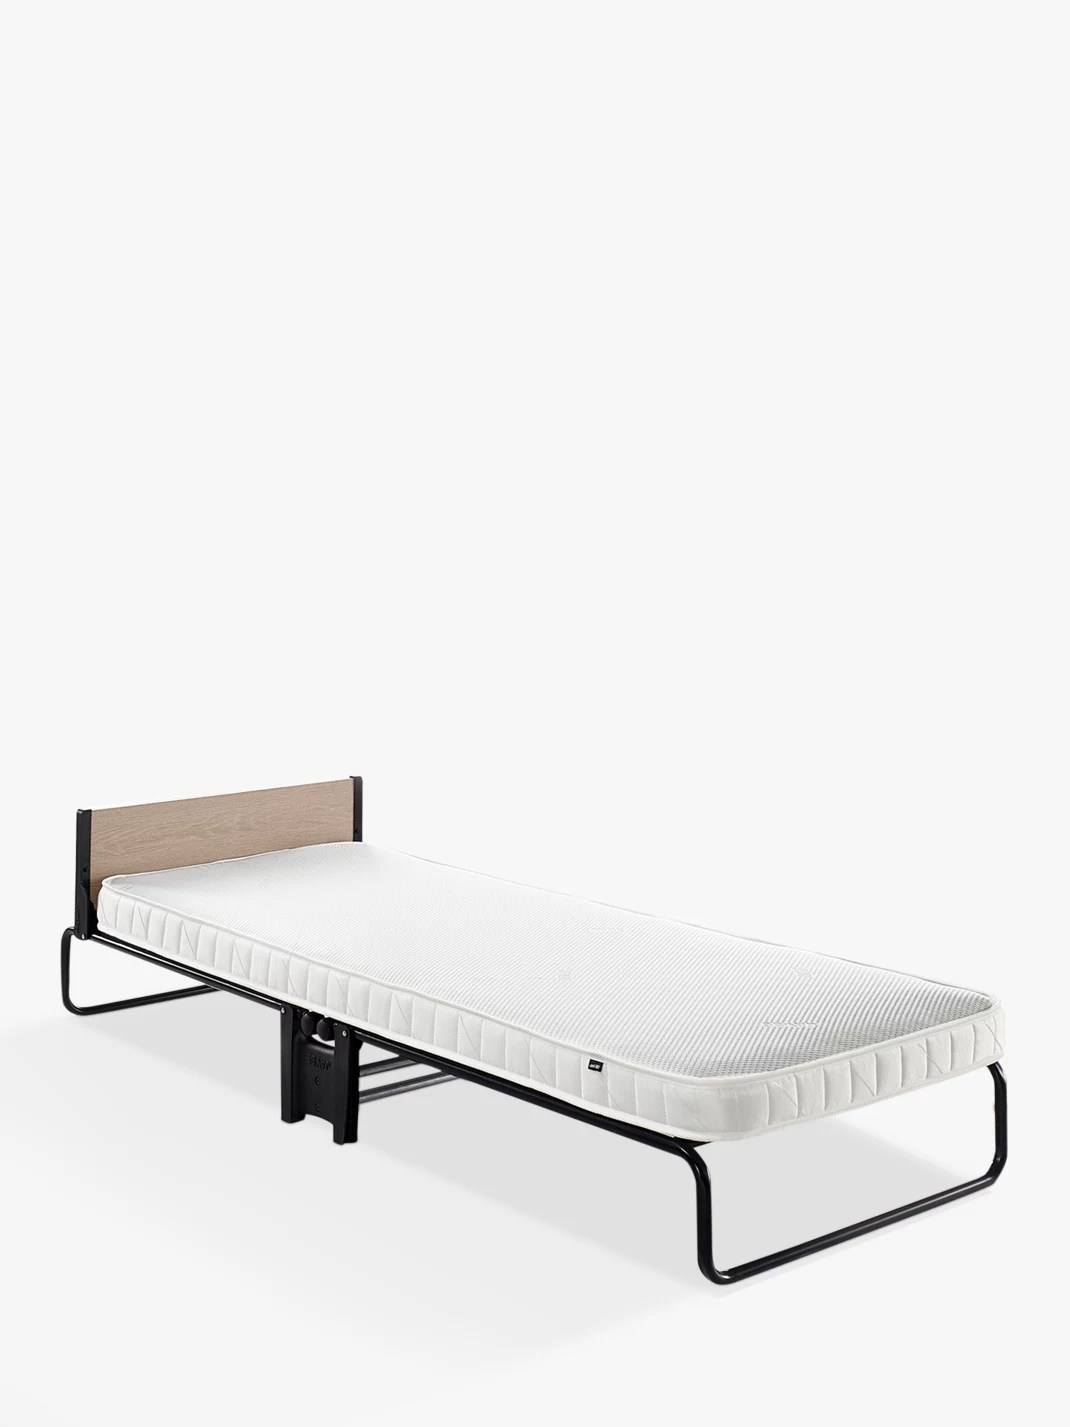 Jay Be Solace Folding Bed With Foam Free Pocket Sprung Mattress Small Single At John Lewis Partners